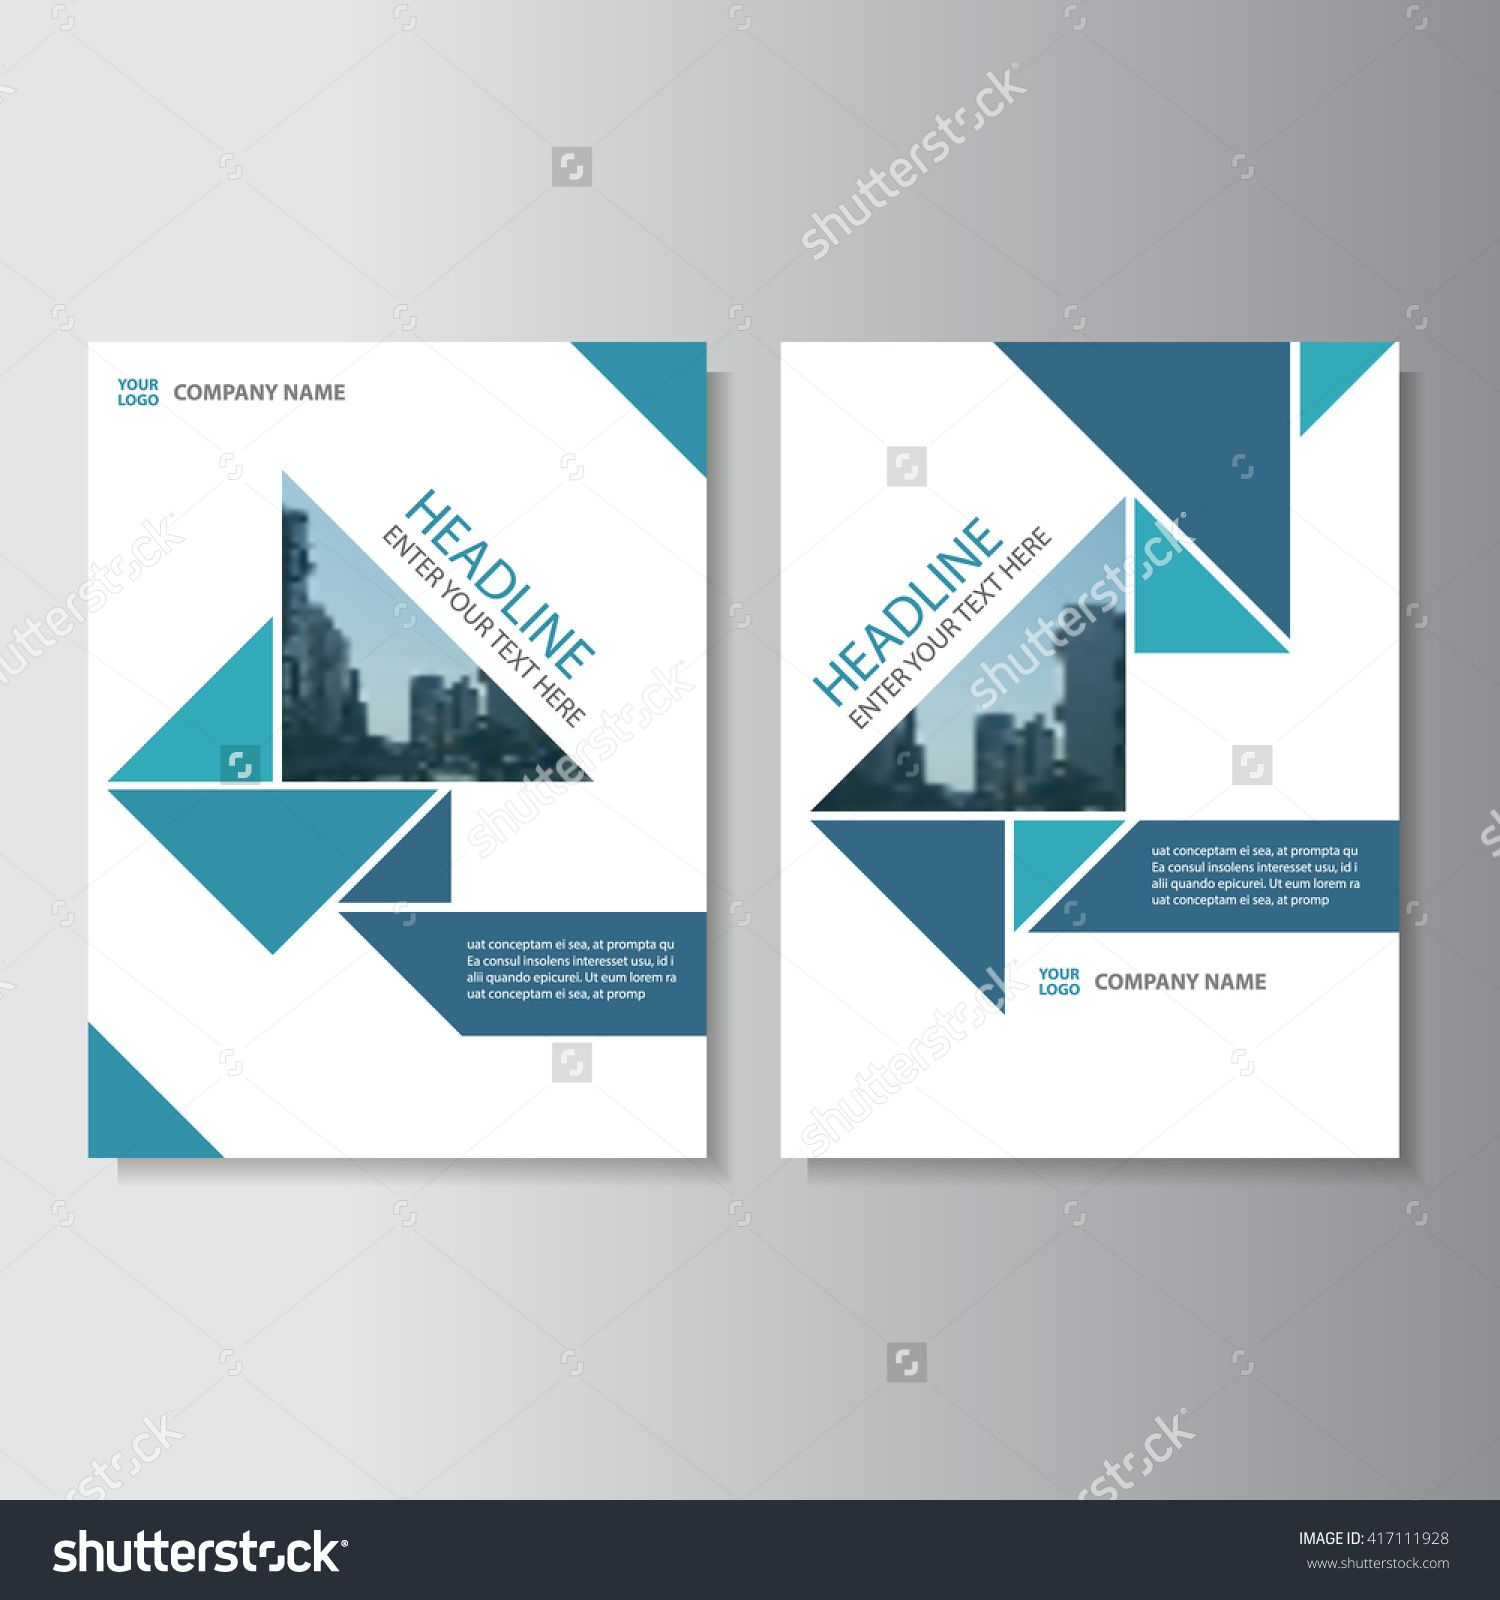 Generous 1 Page Resume Templates Tiny 100 Free Resume Round 12 Piece Puzzle Template 14 Year Old Resumes Young 1500 Claim Form Template Green16 Birthday Invitation Templates Blue Triangle Vector Annual Report Leaflet Brochure Flyer Template ..